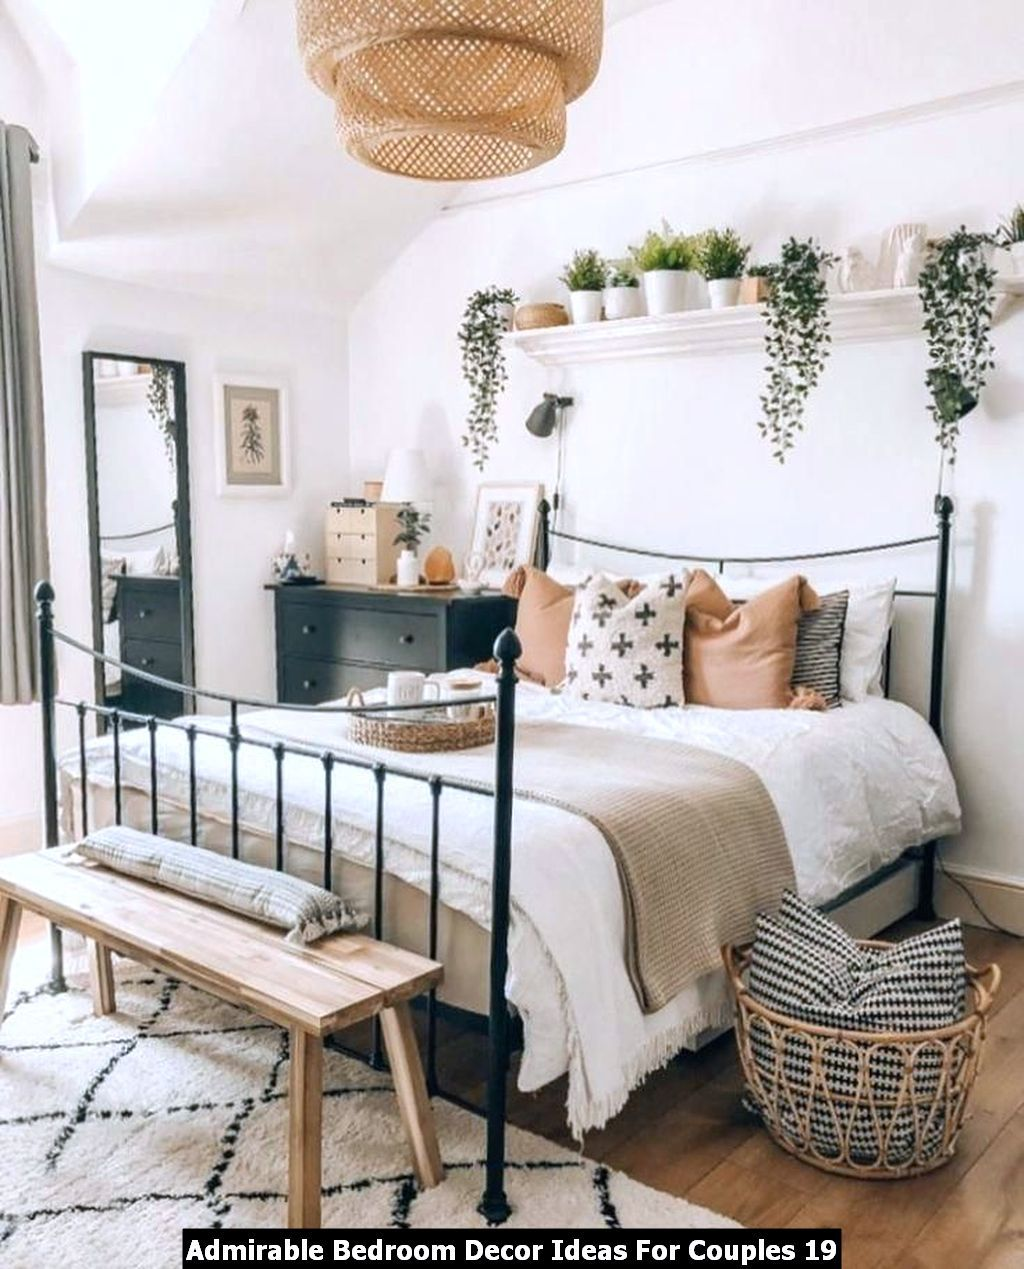 Admirable Bedroom Decor Ideas For Couples   Trendehouse   Bedroom ...